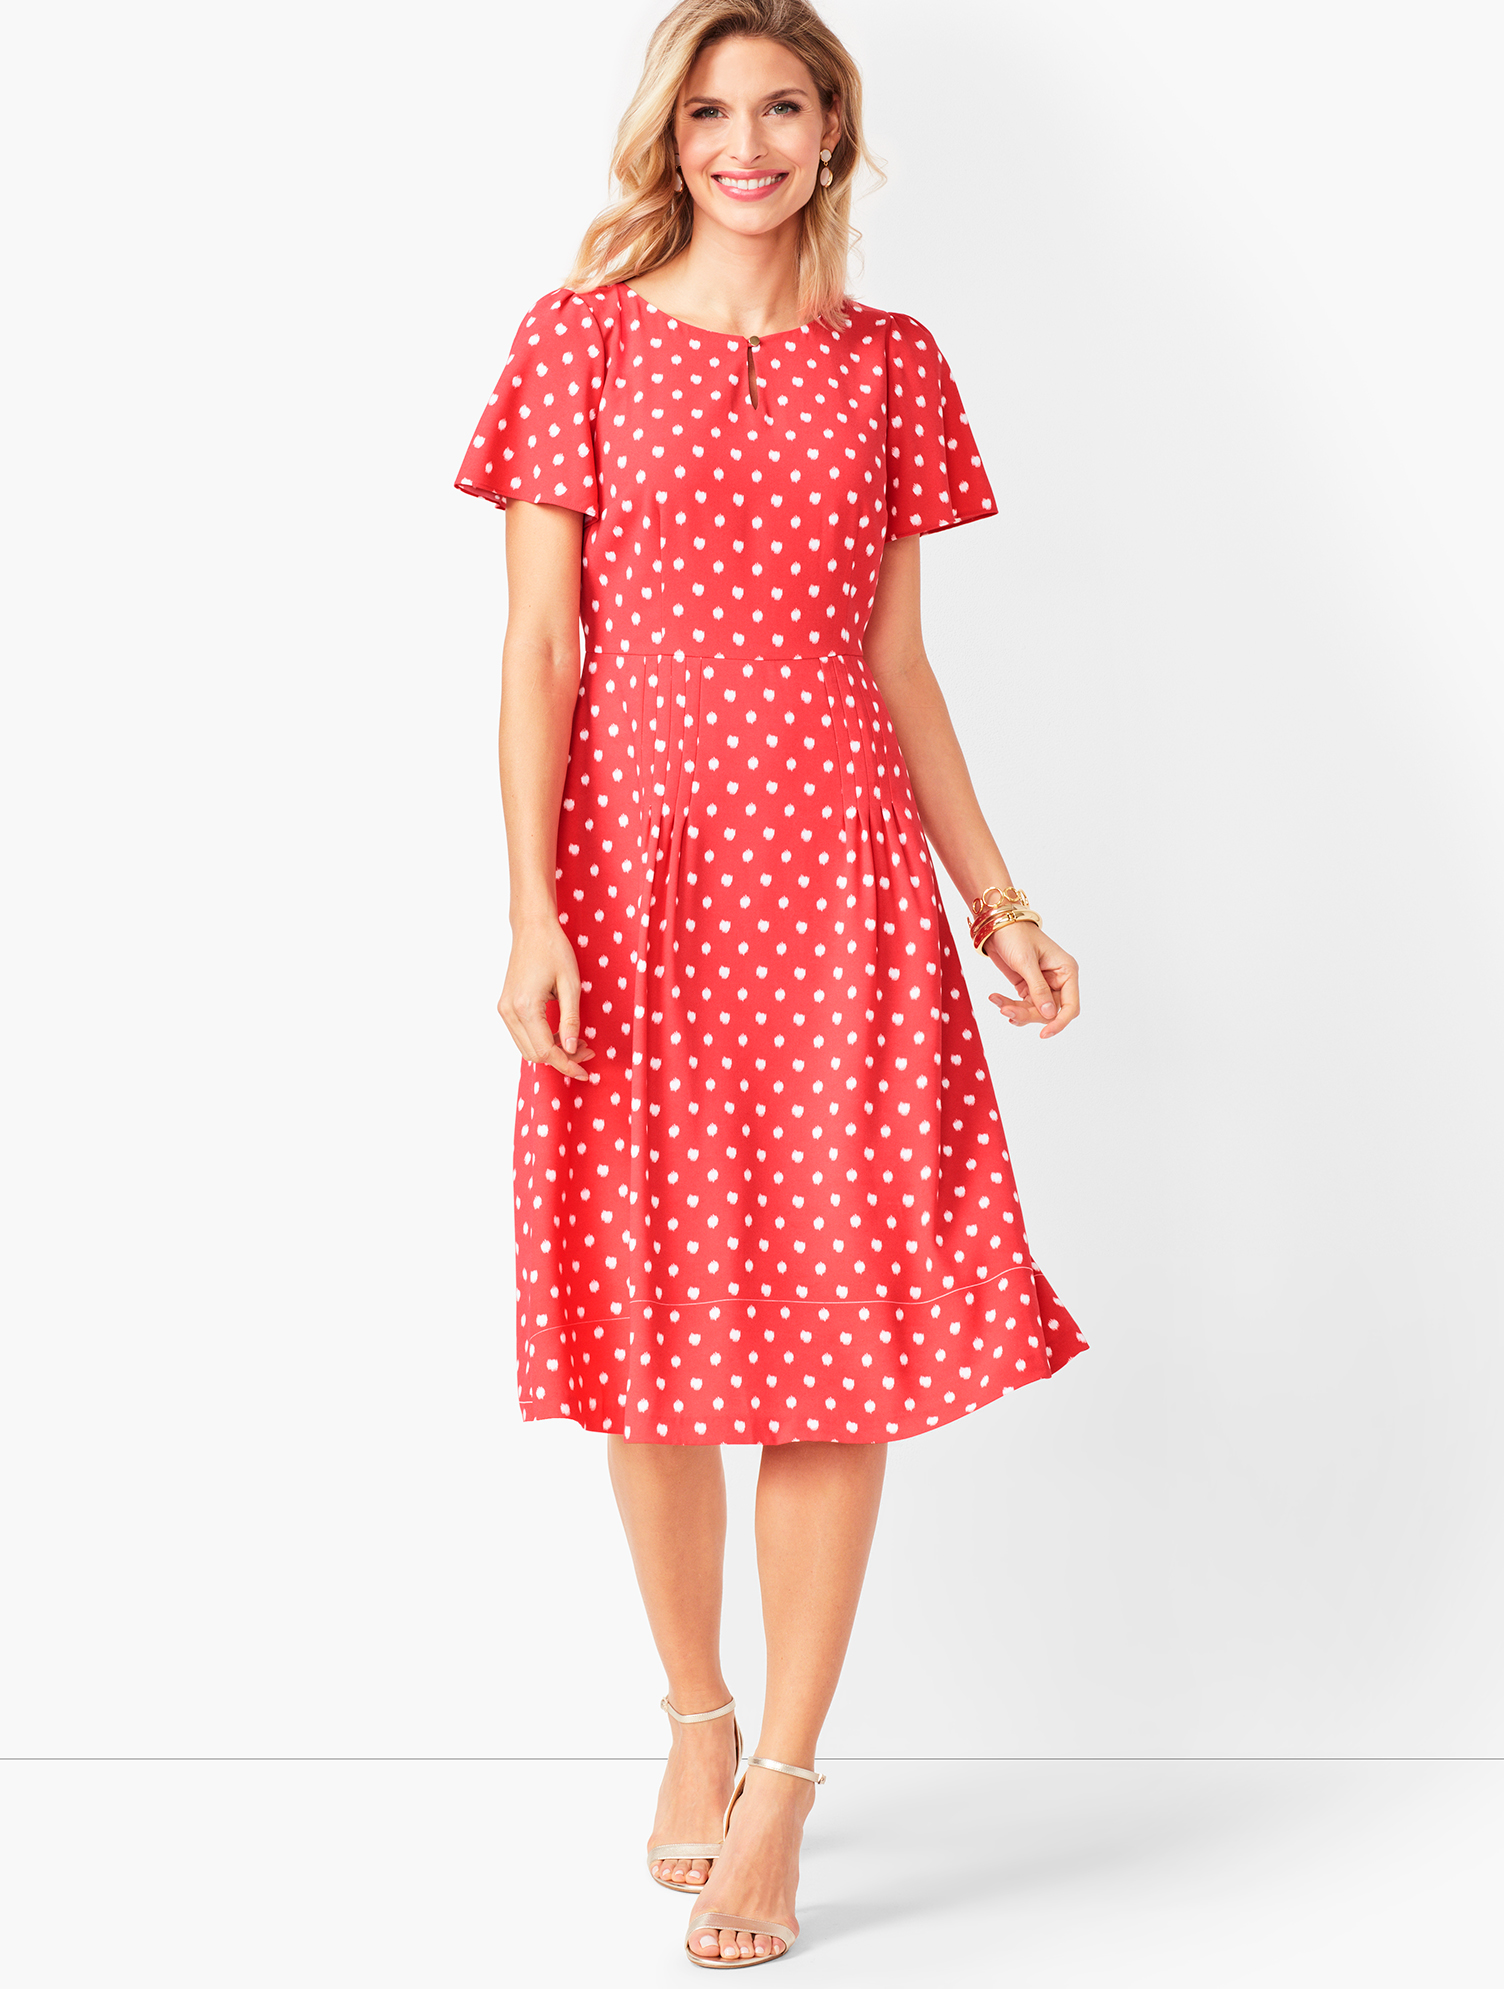 1930s Day Dresses, Tea Dresses, House Dresses Ikat Dot Fit  Flare Dress - PAPAYA - 16 - Talbots $119.99 AT vintagedancer.com